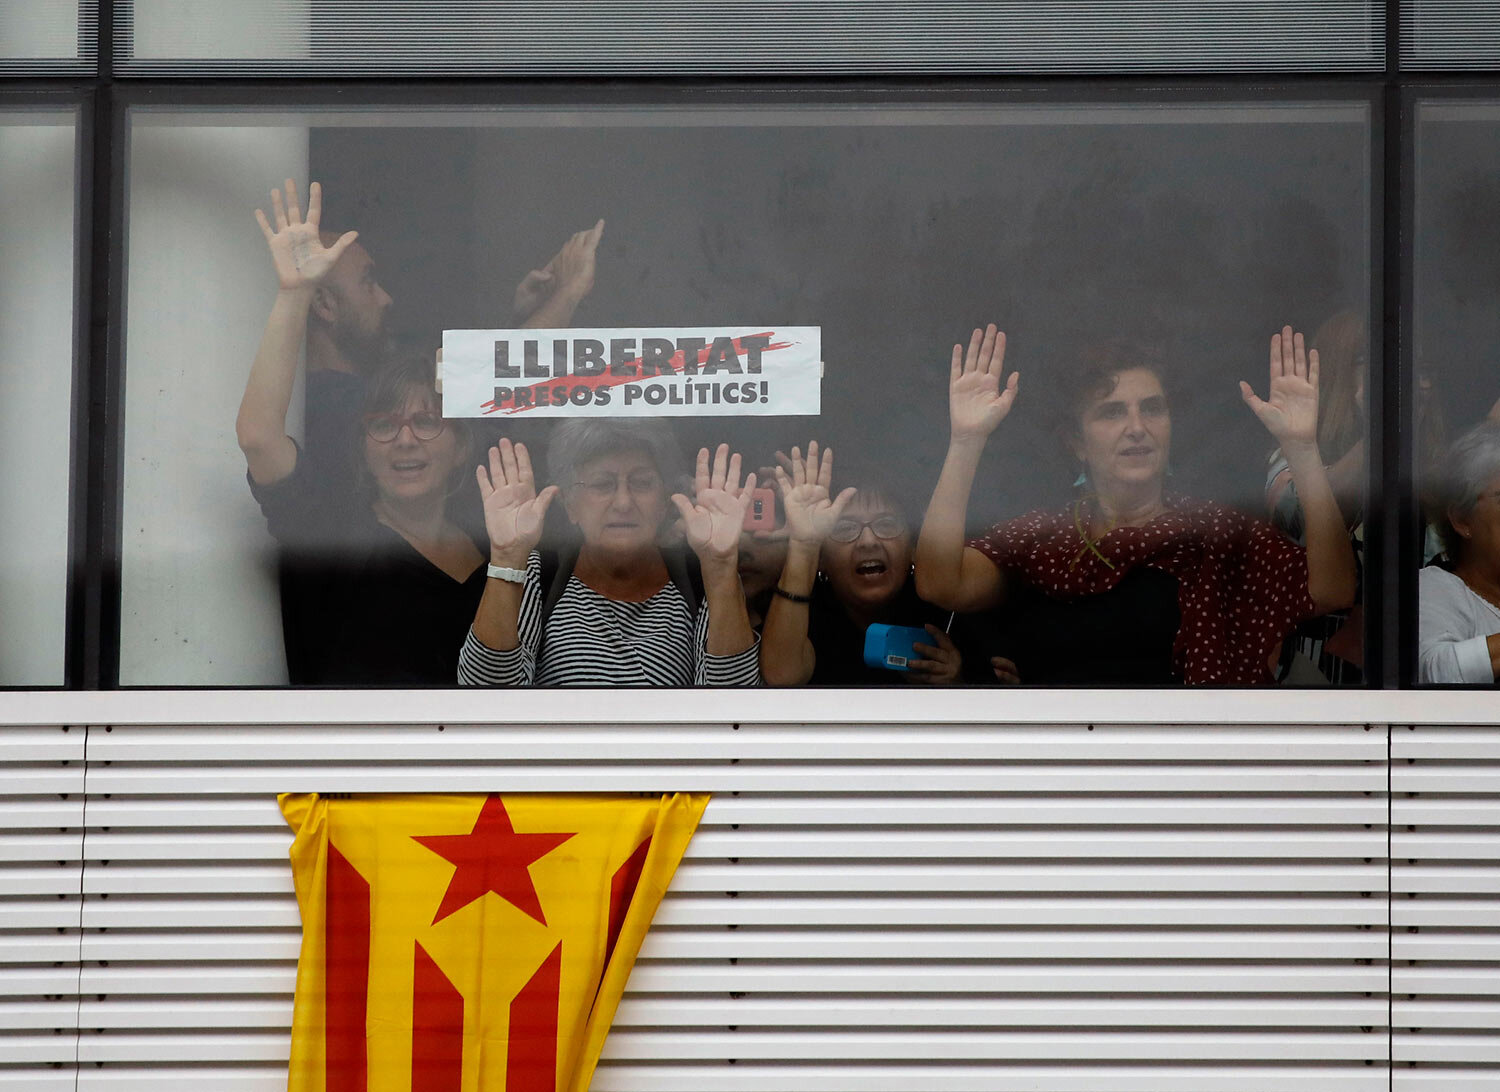 """Protesters stand behind a banner reading in Catalan, """"Freedom for Political Prisoners"""" at El Prat airport in Barcelona, Spain, Monday, Oct. 14, 2019. (AP Photo/Emilio Morenatti)"""